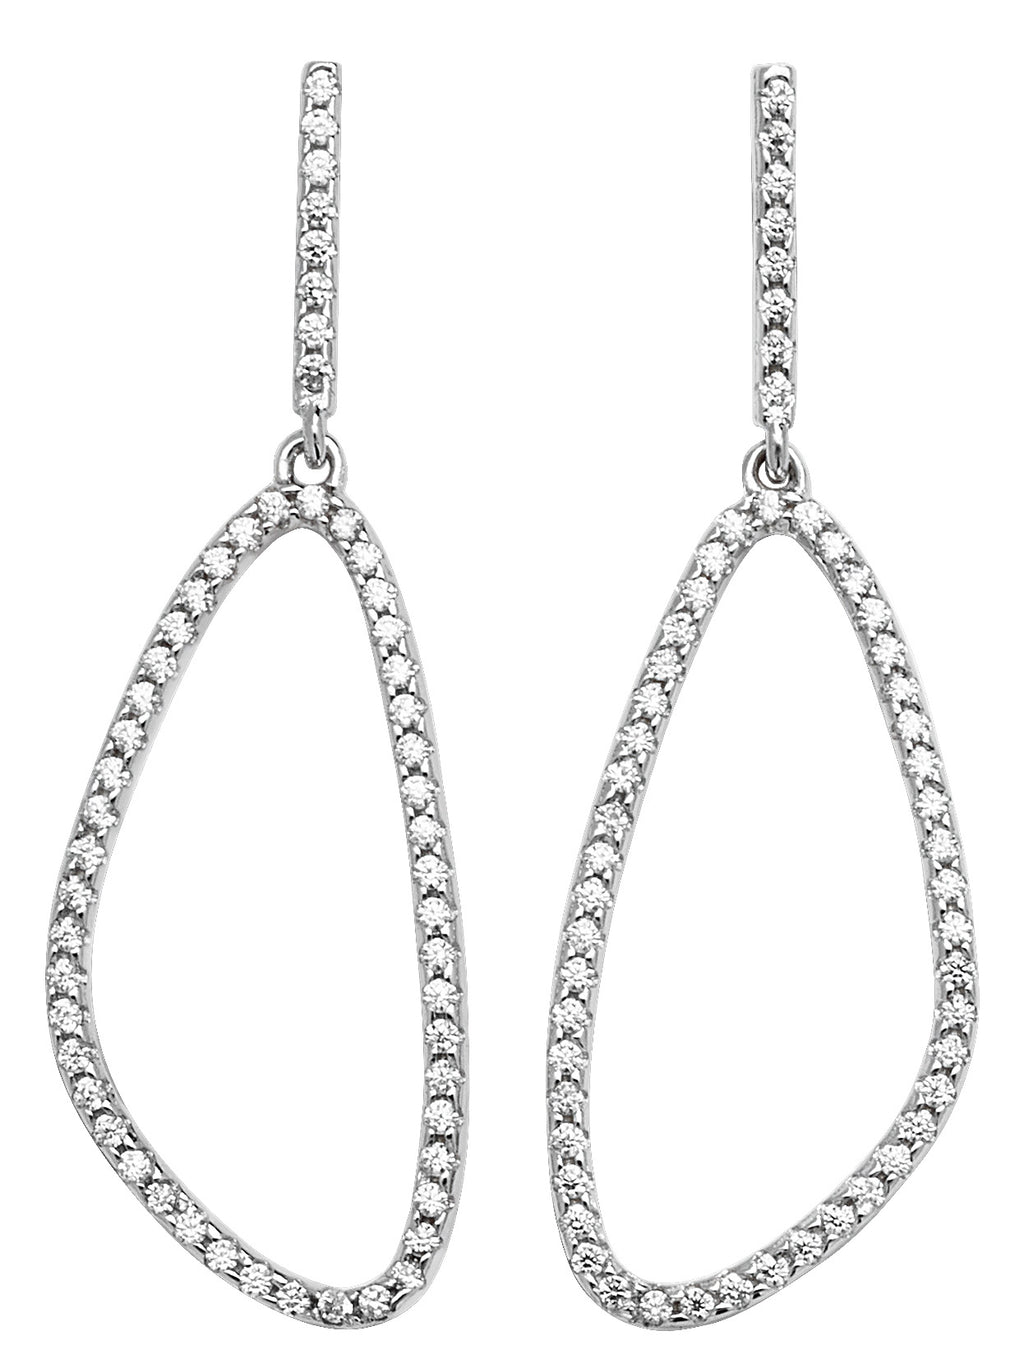 Silver Cubic Zirconia Earrings